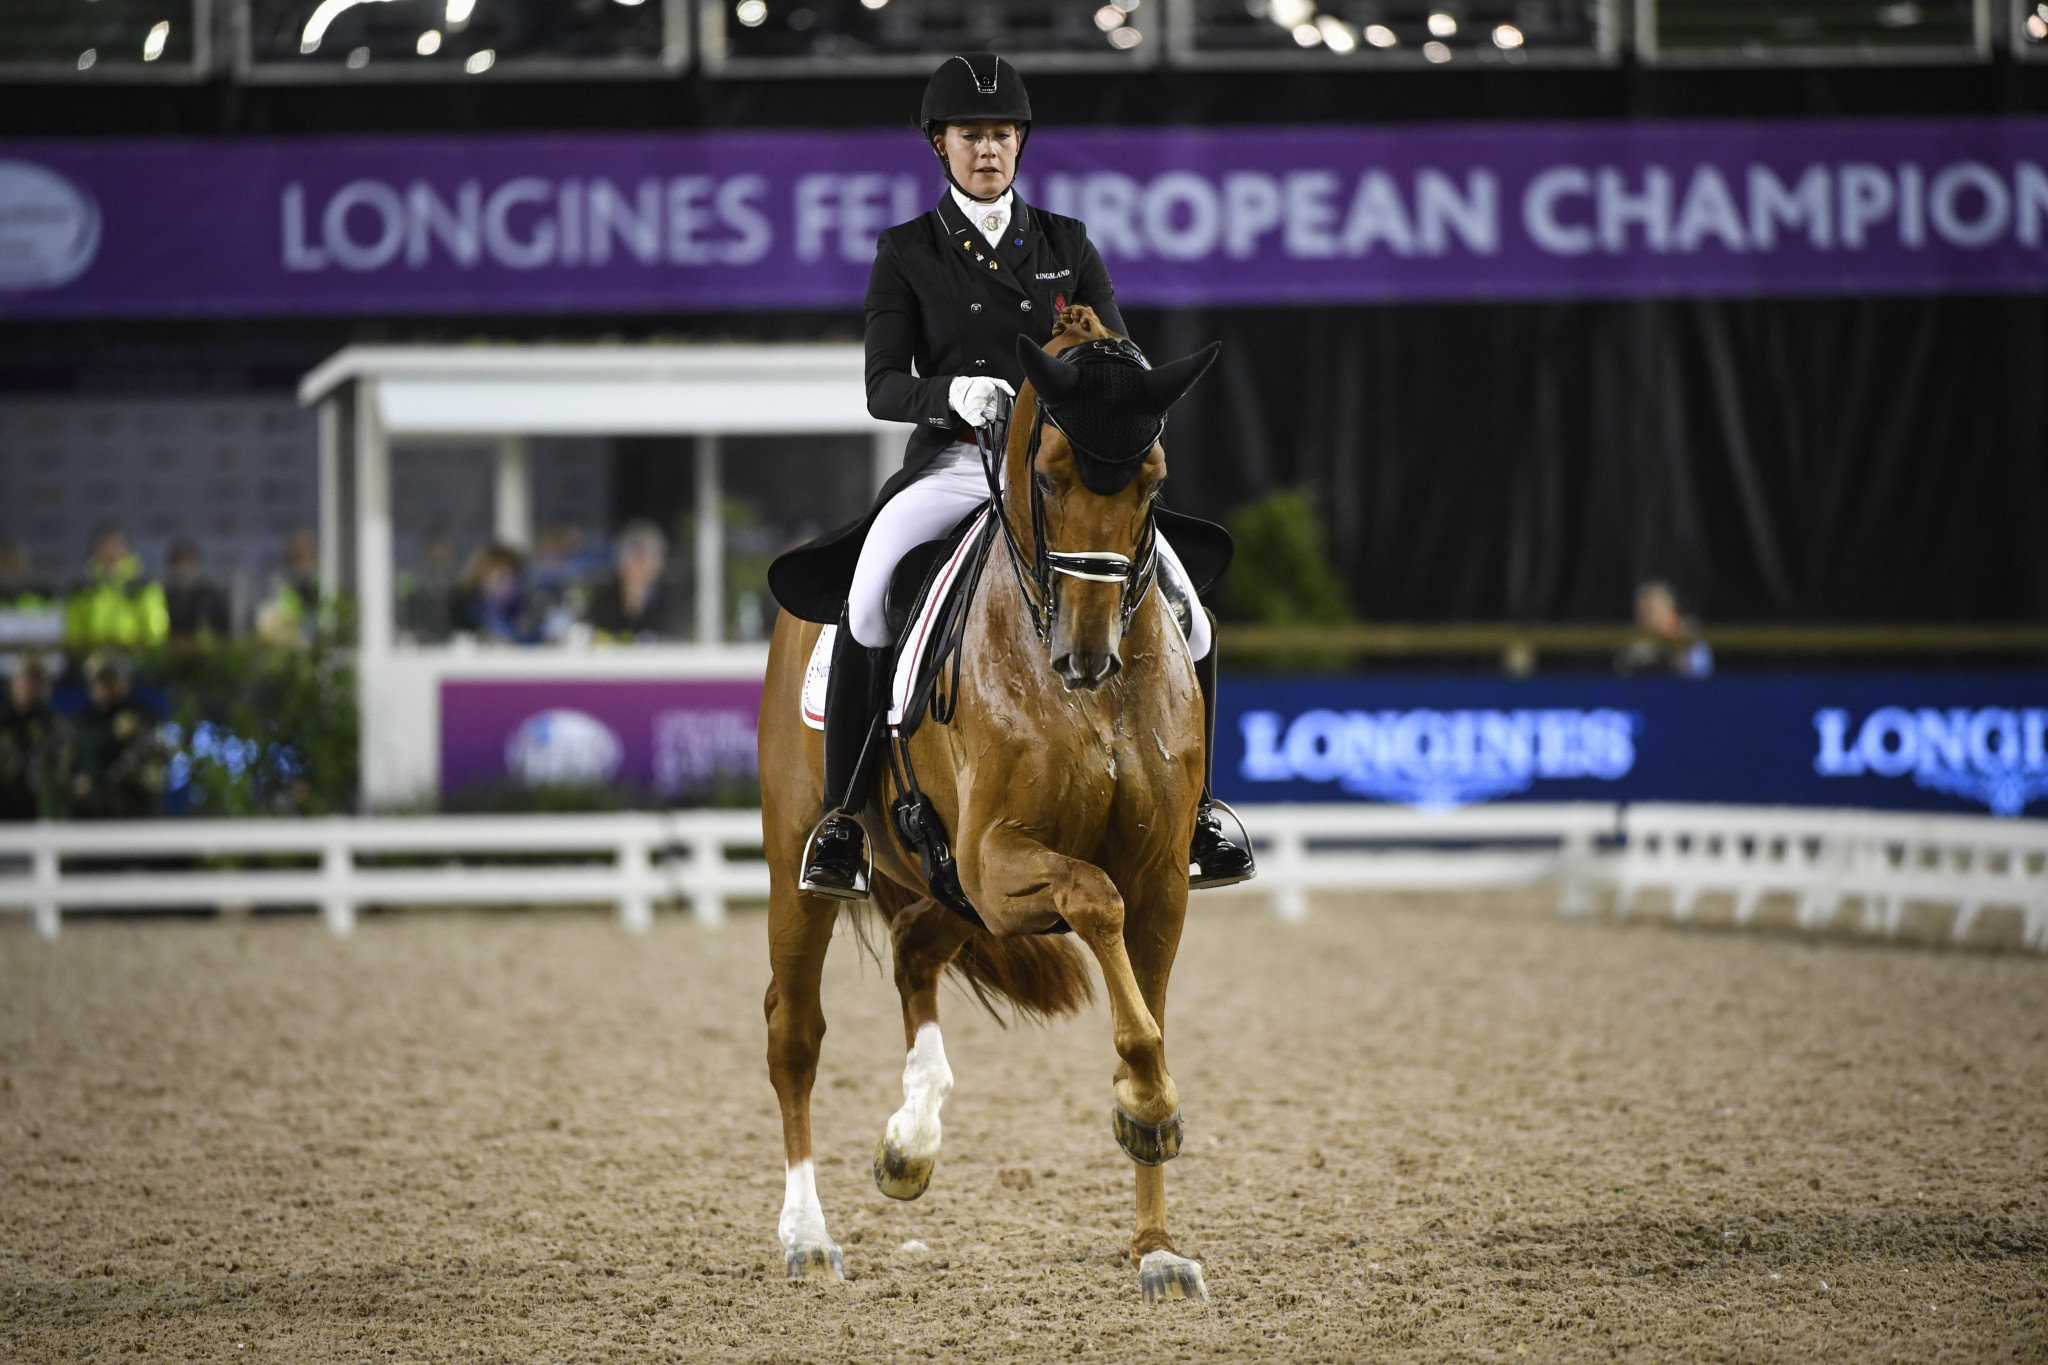 Dufour rides to home win at Dressage World Cup in Herning